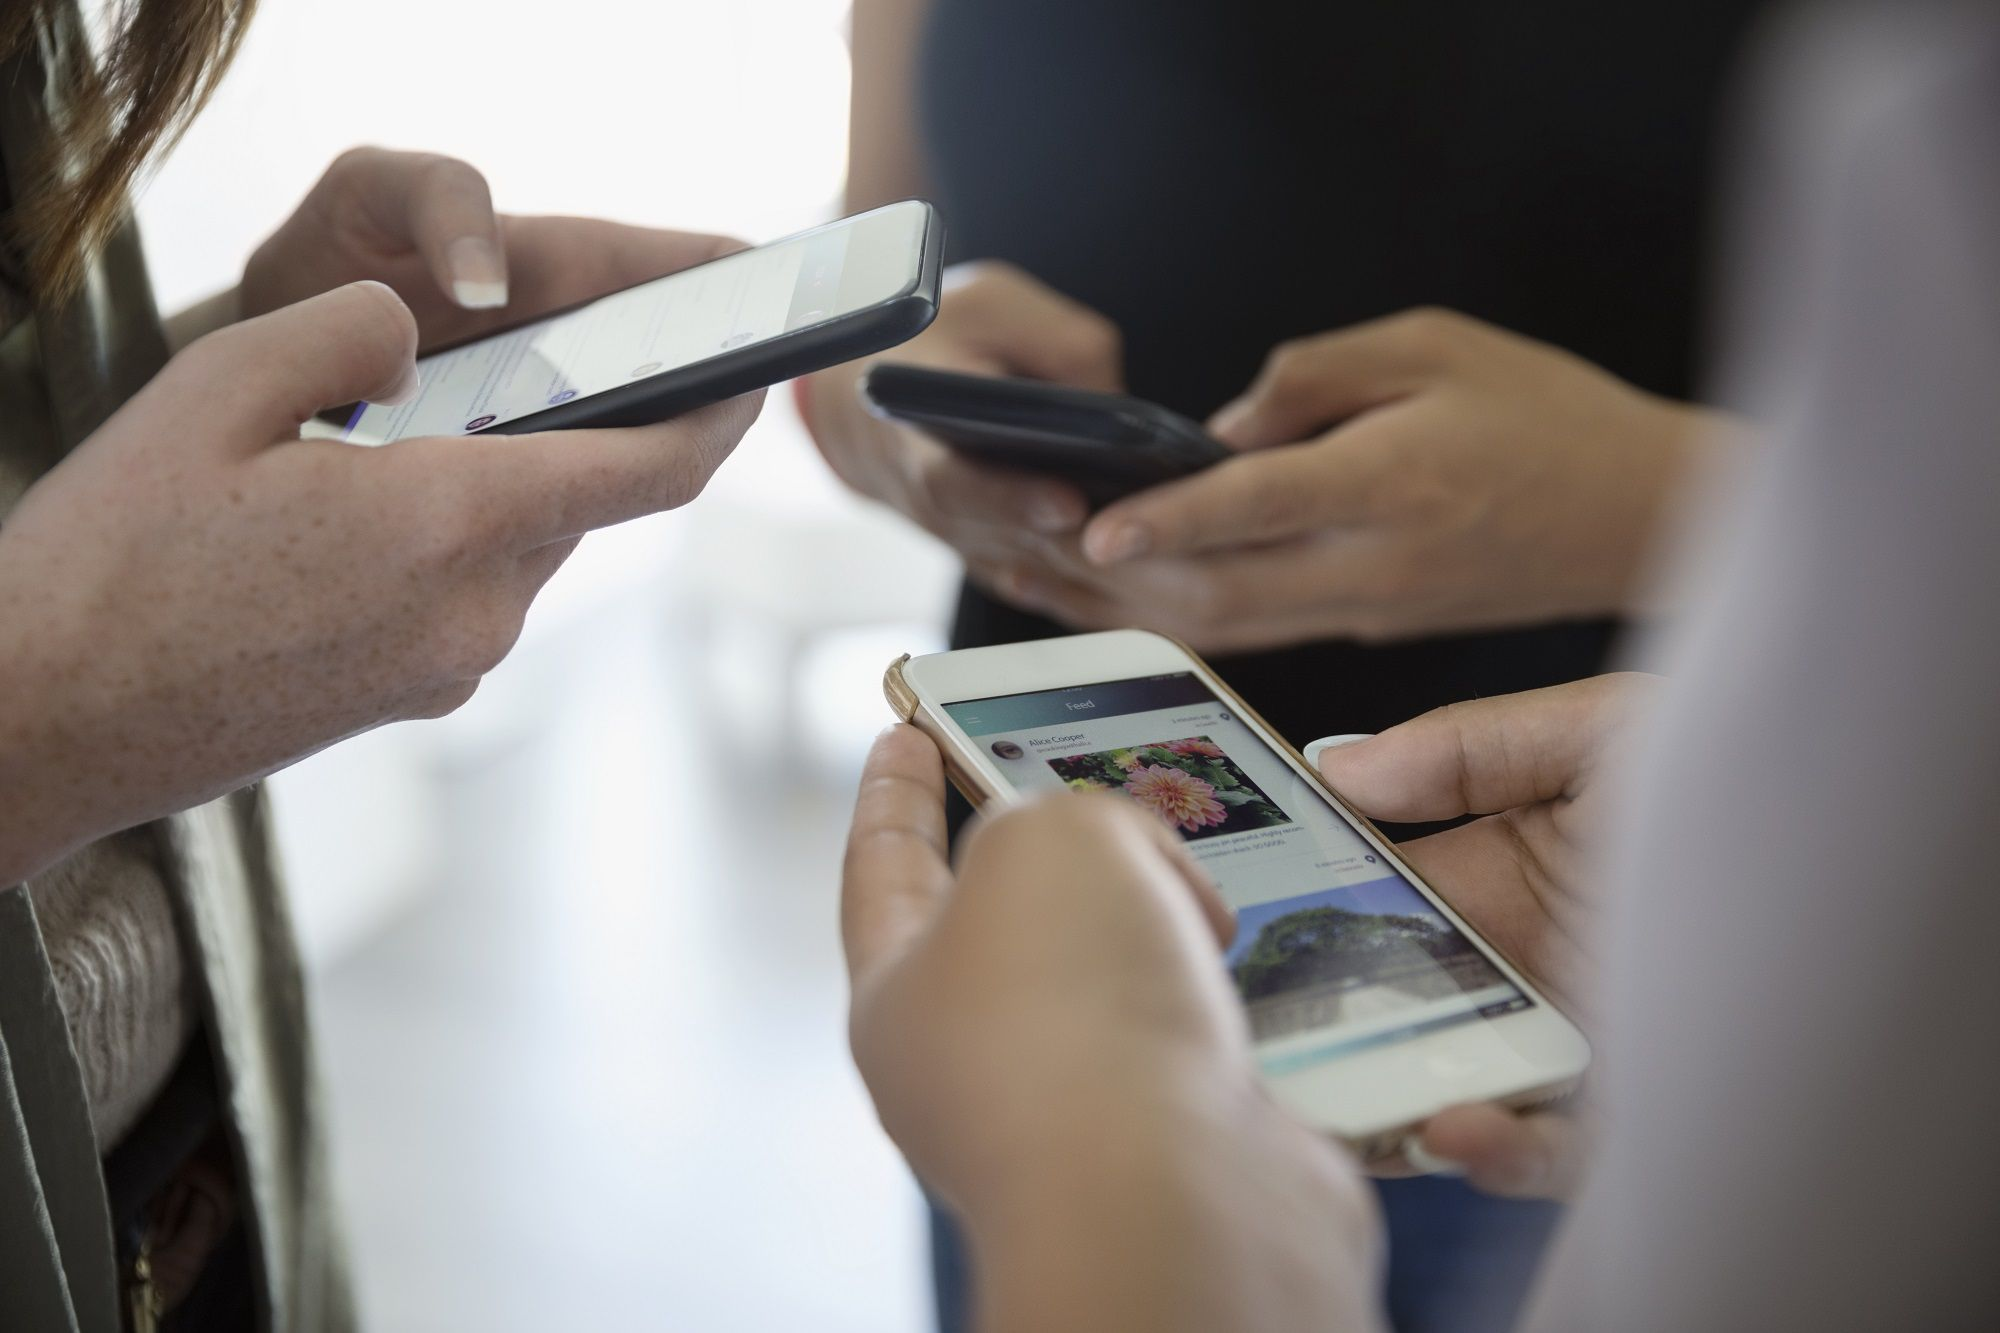 A group of people using text messaging.